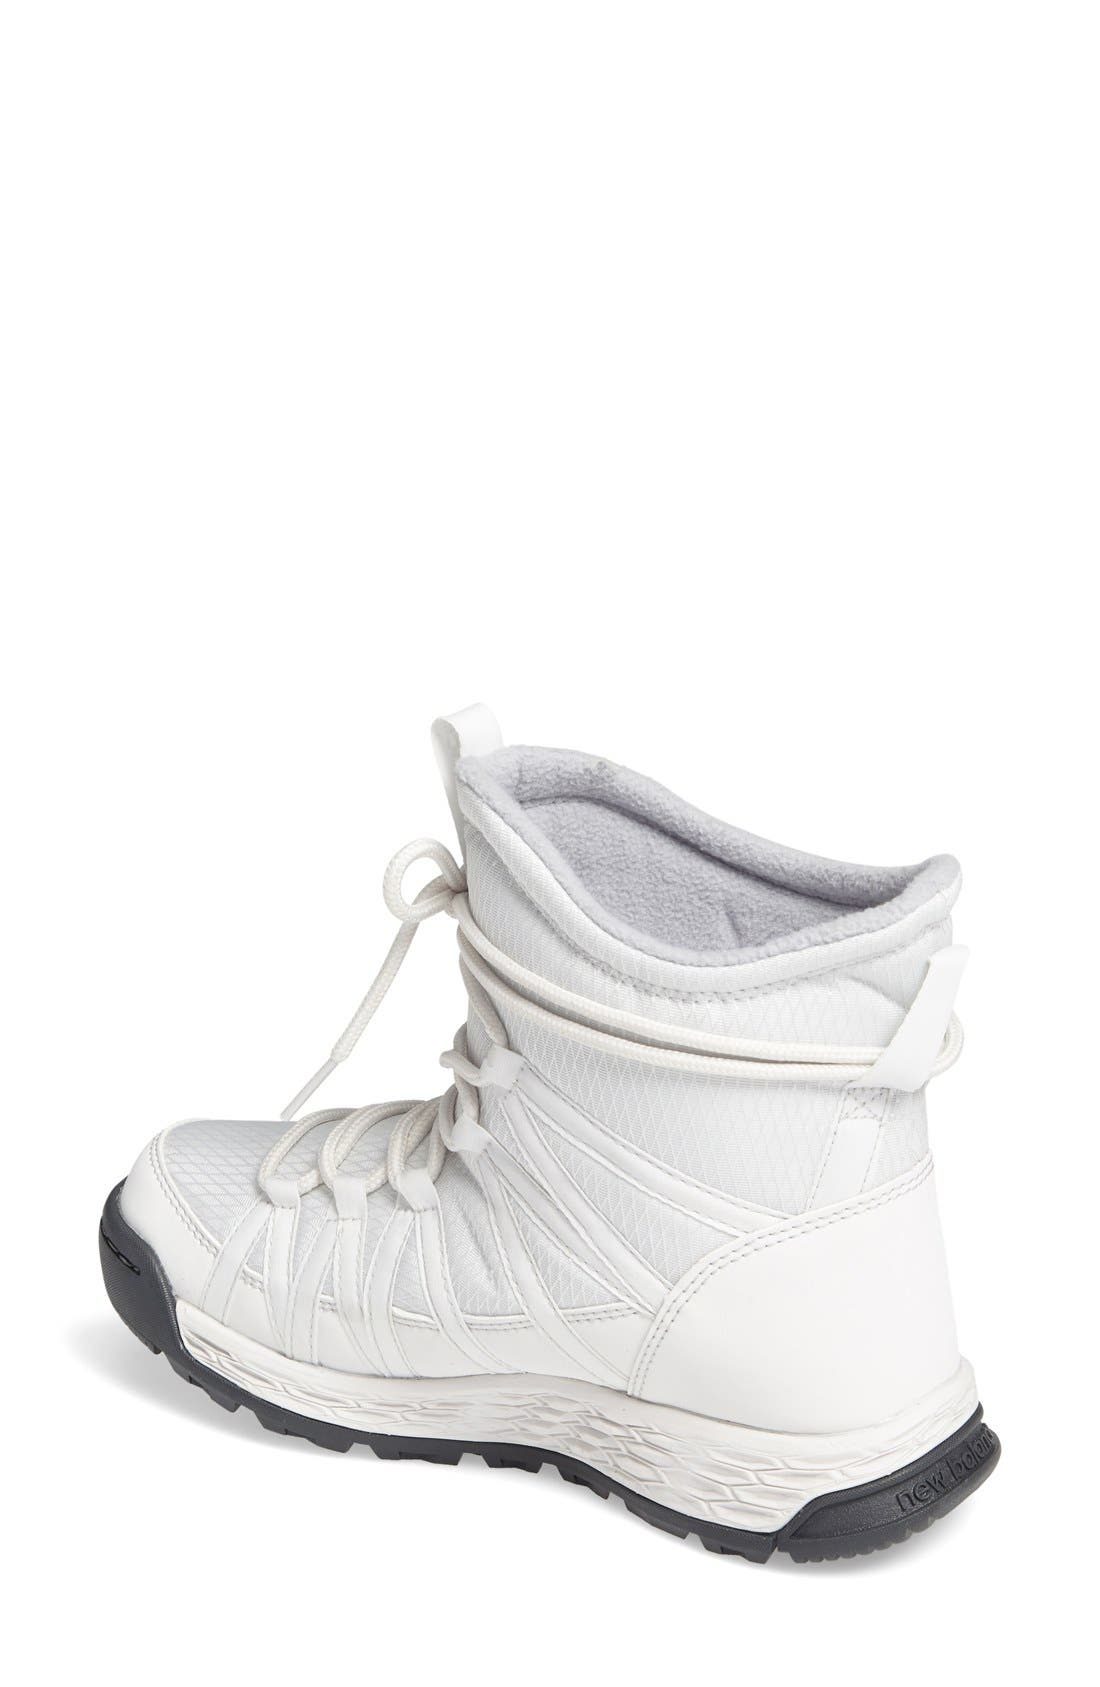 Alternate Image 2  - New Balance Q416 Weatherproof Snow Boot (Women)